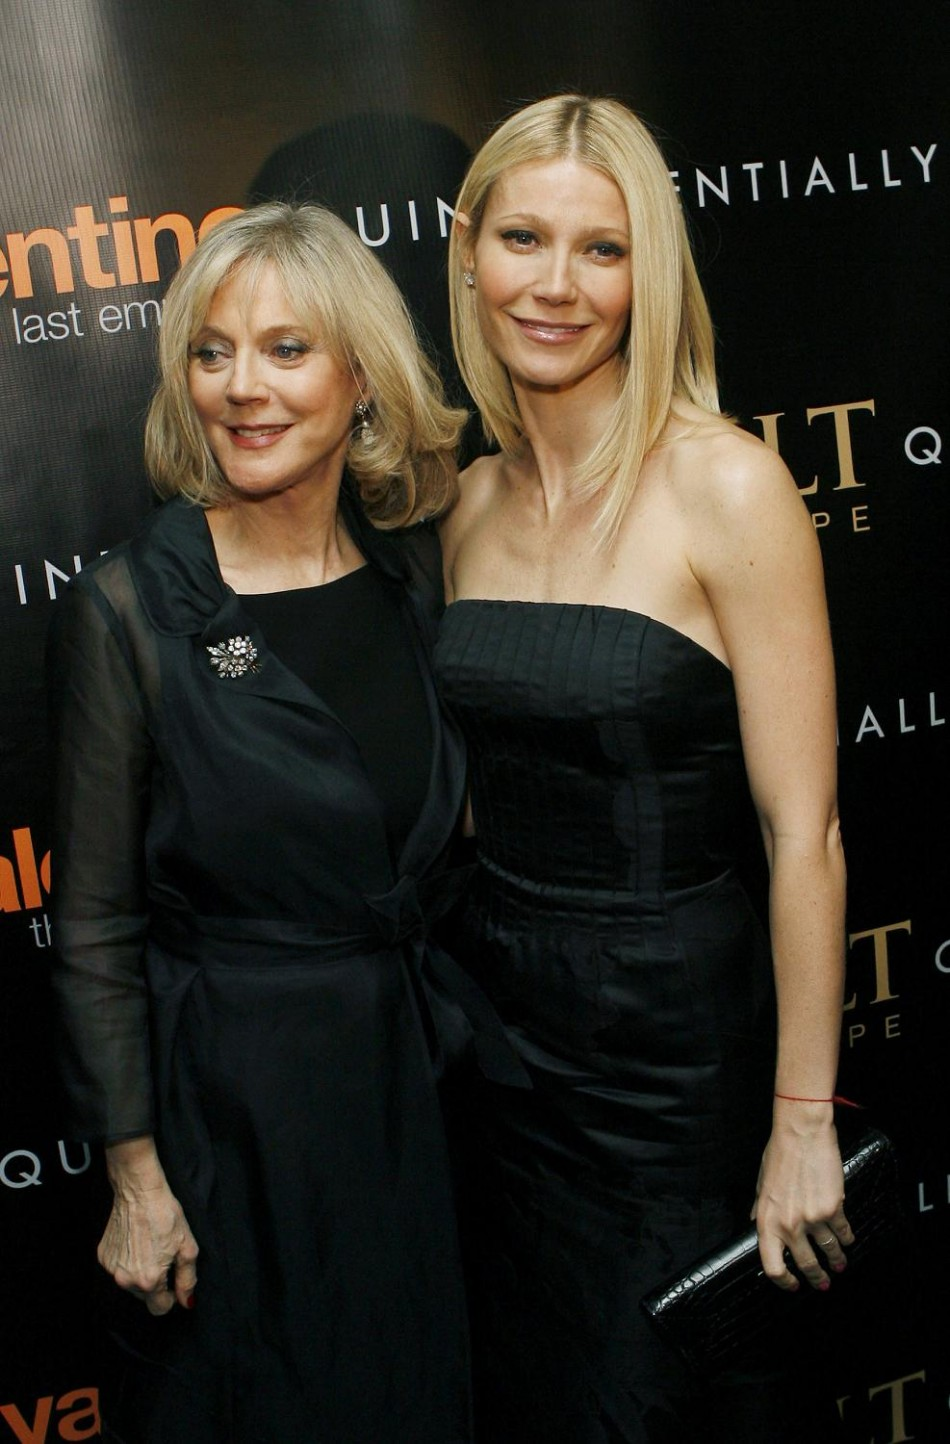 Actress Paltrow arrives with her mother actress Danner at premiere of film